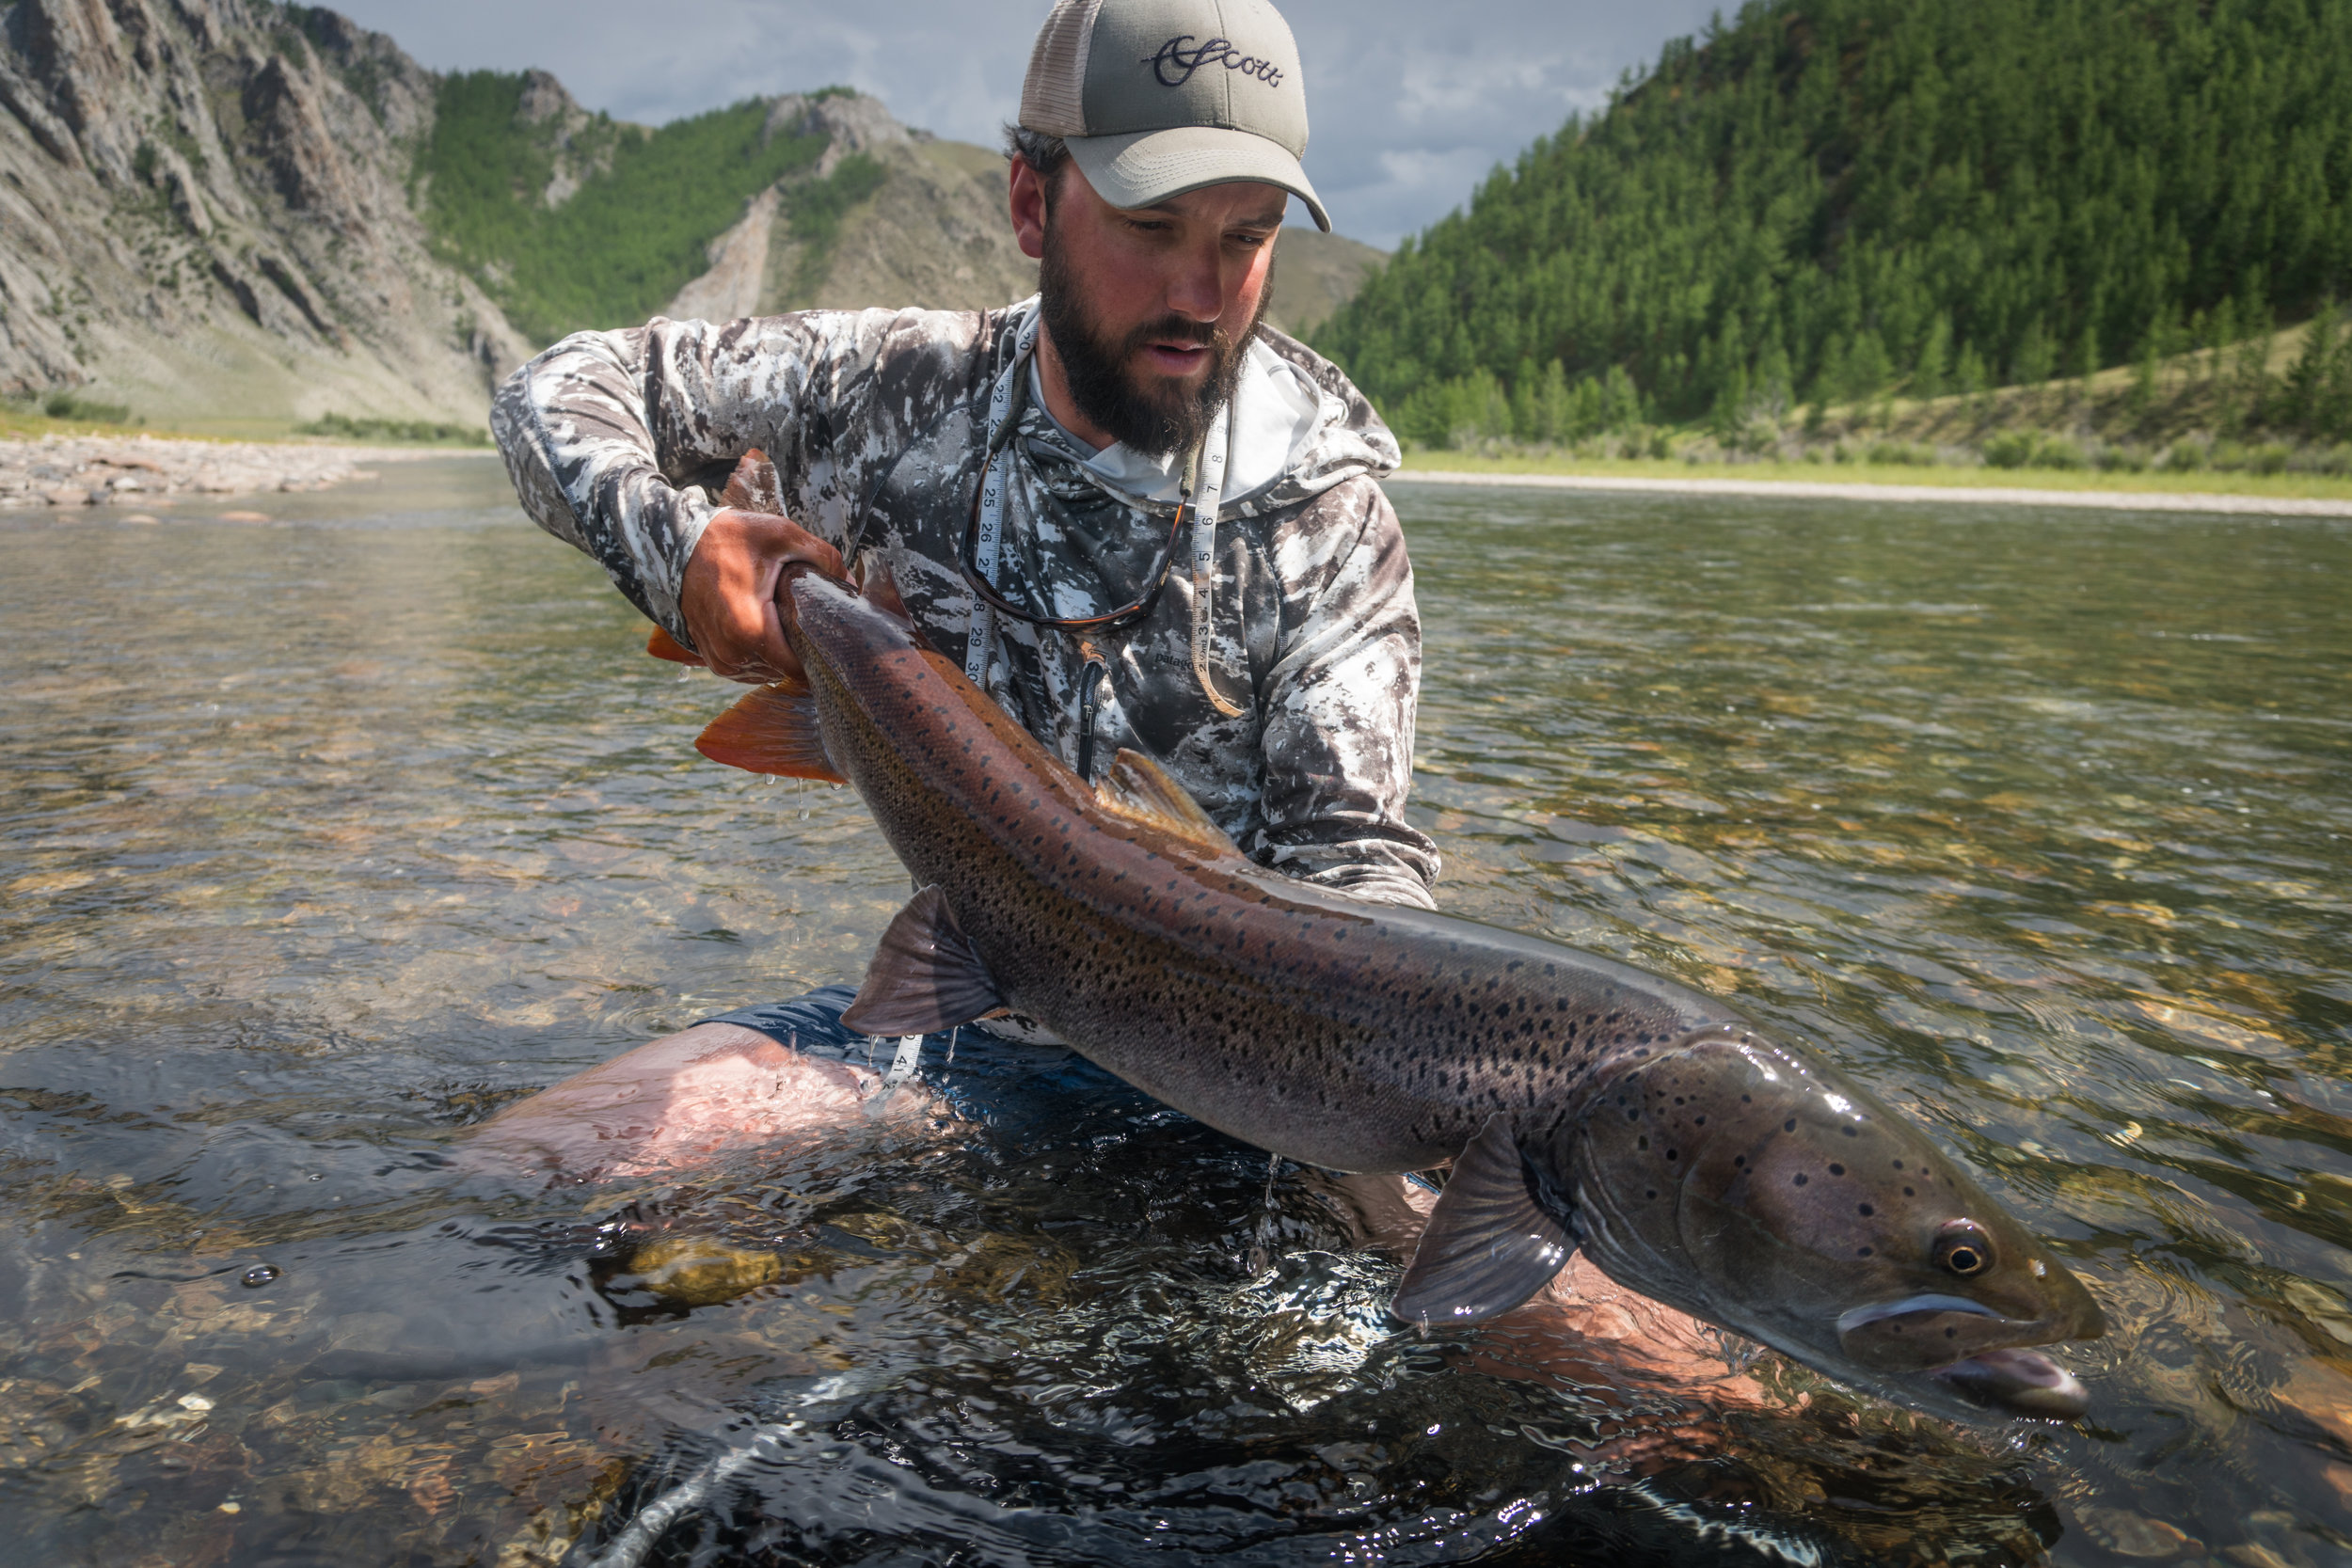 Fly fishing guide Jeff Forsee with a large Mongolian taimen